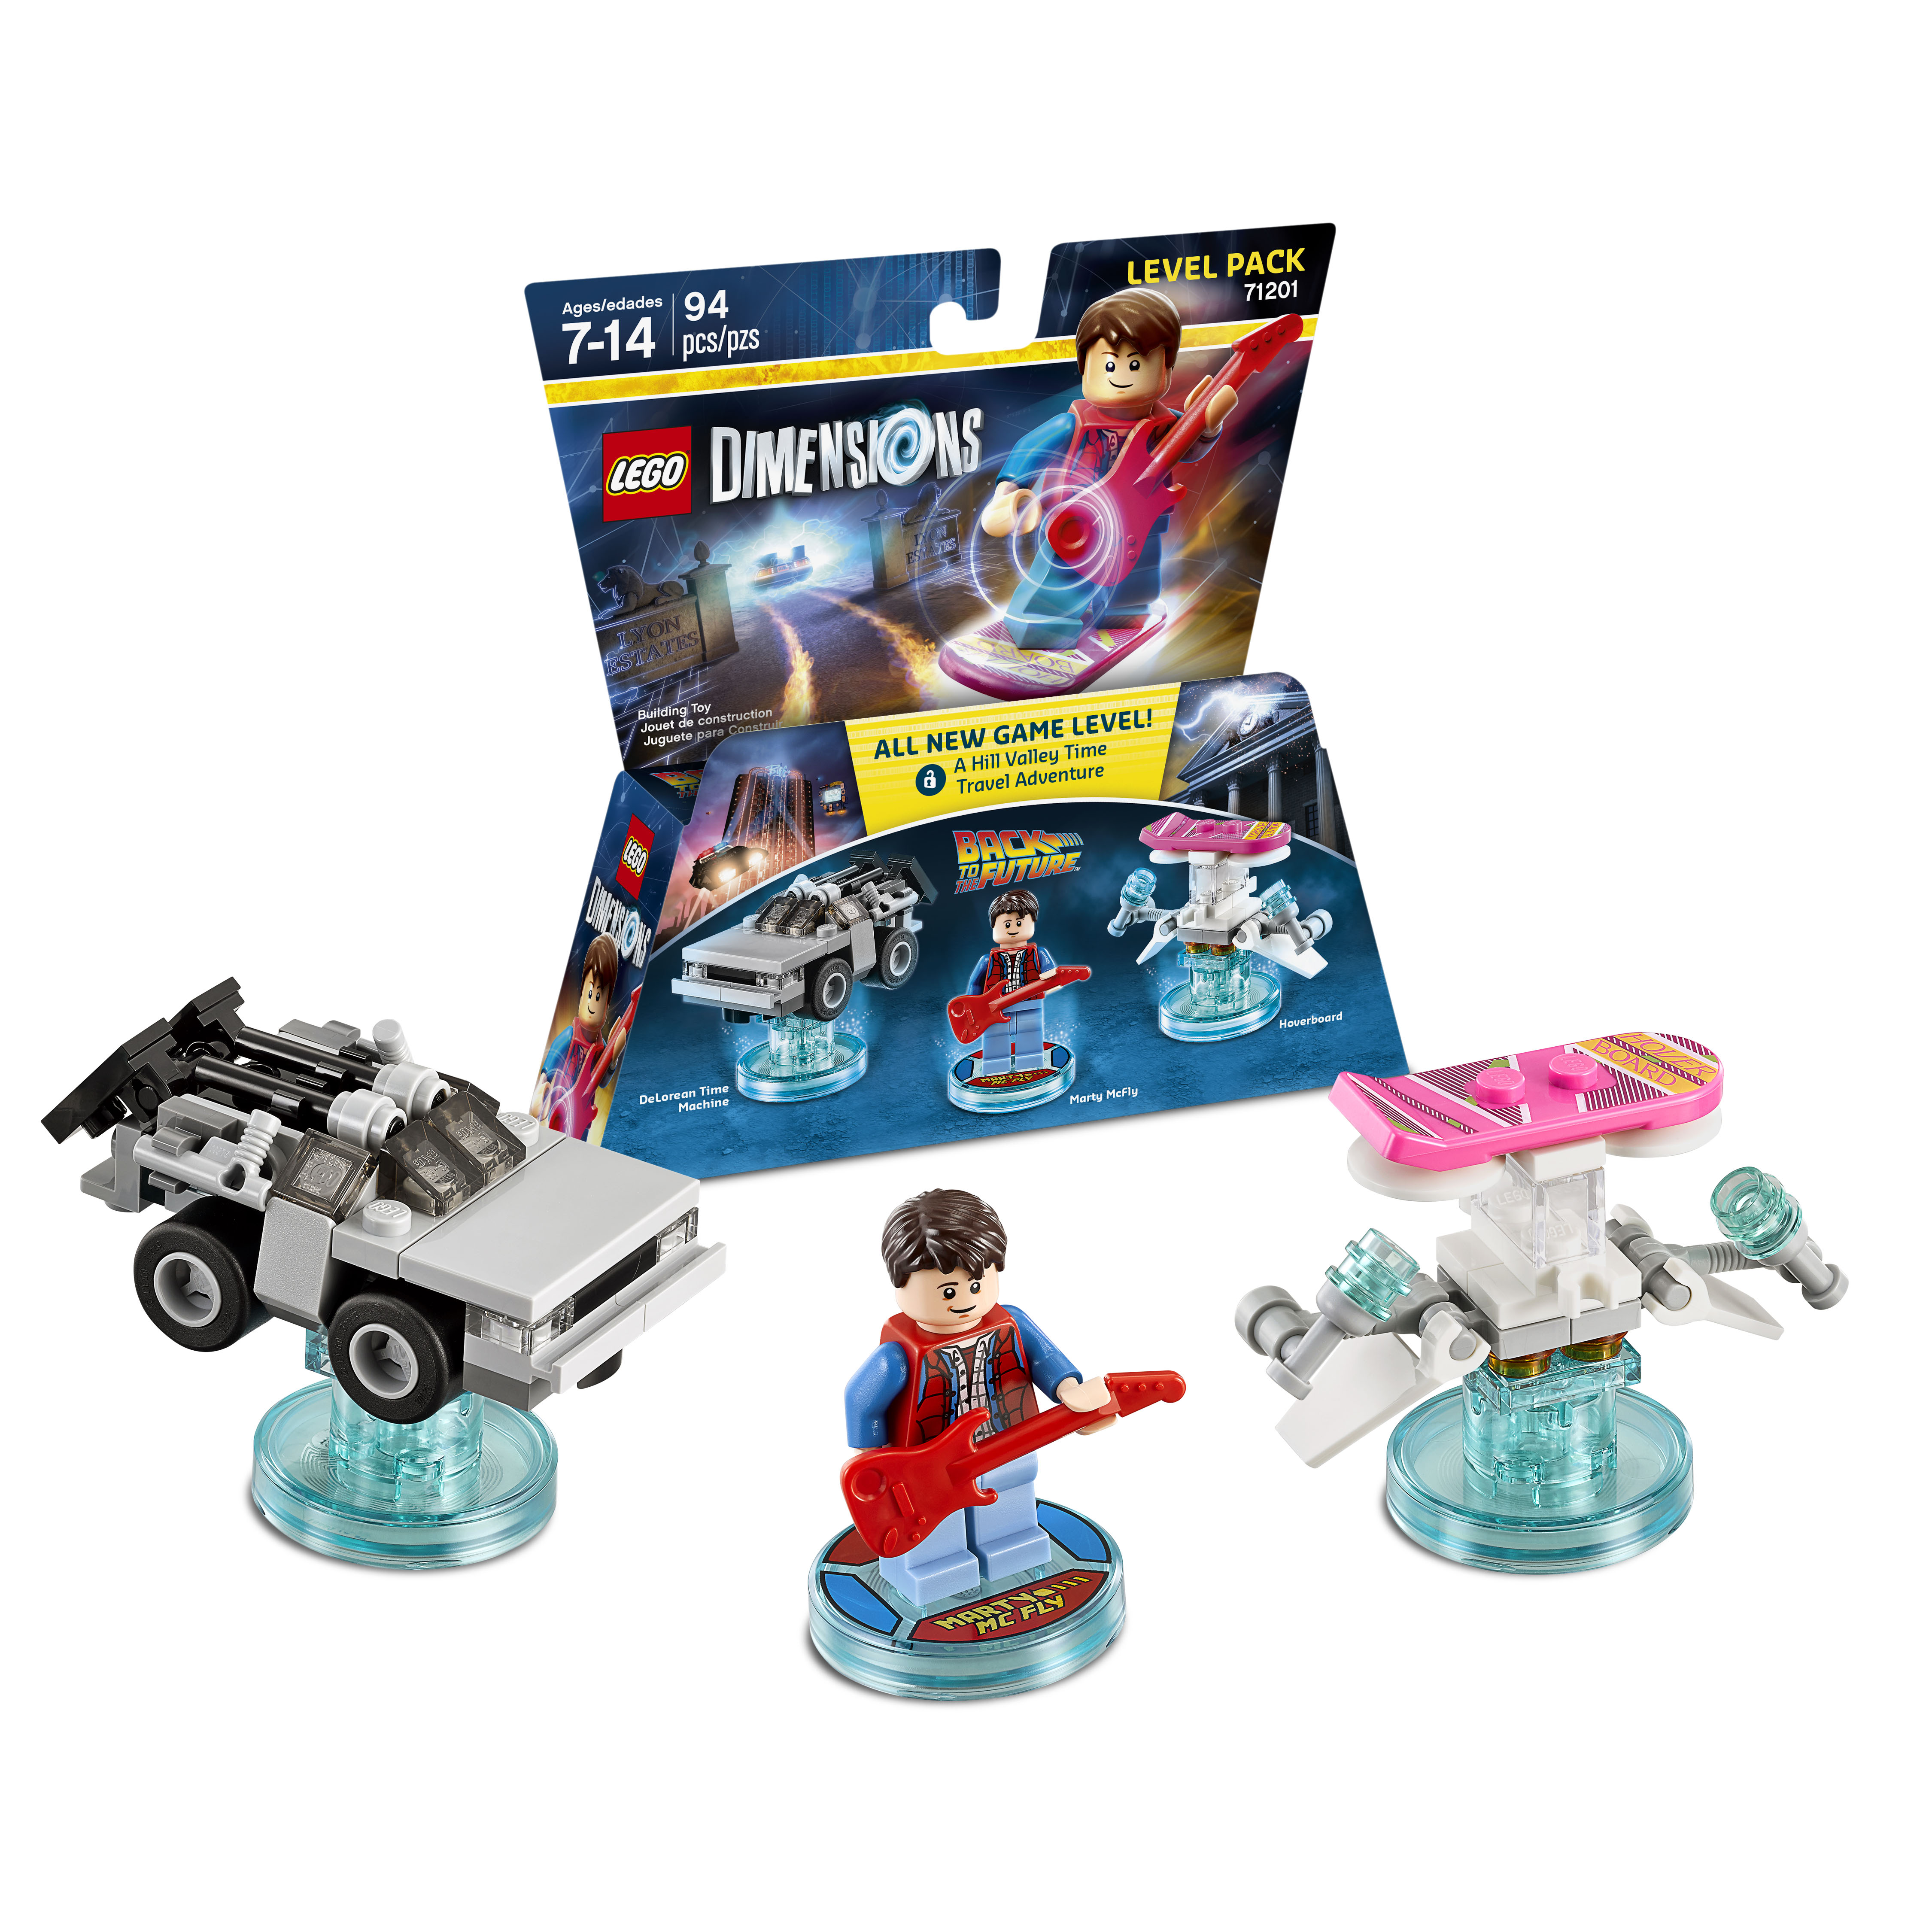 Big Lego Bricks Lego Is Taking On Skylanders With Its Own Version Of Toy